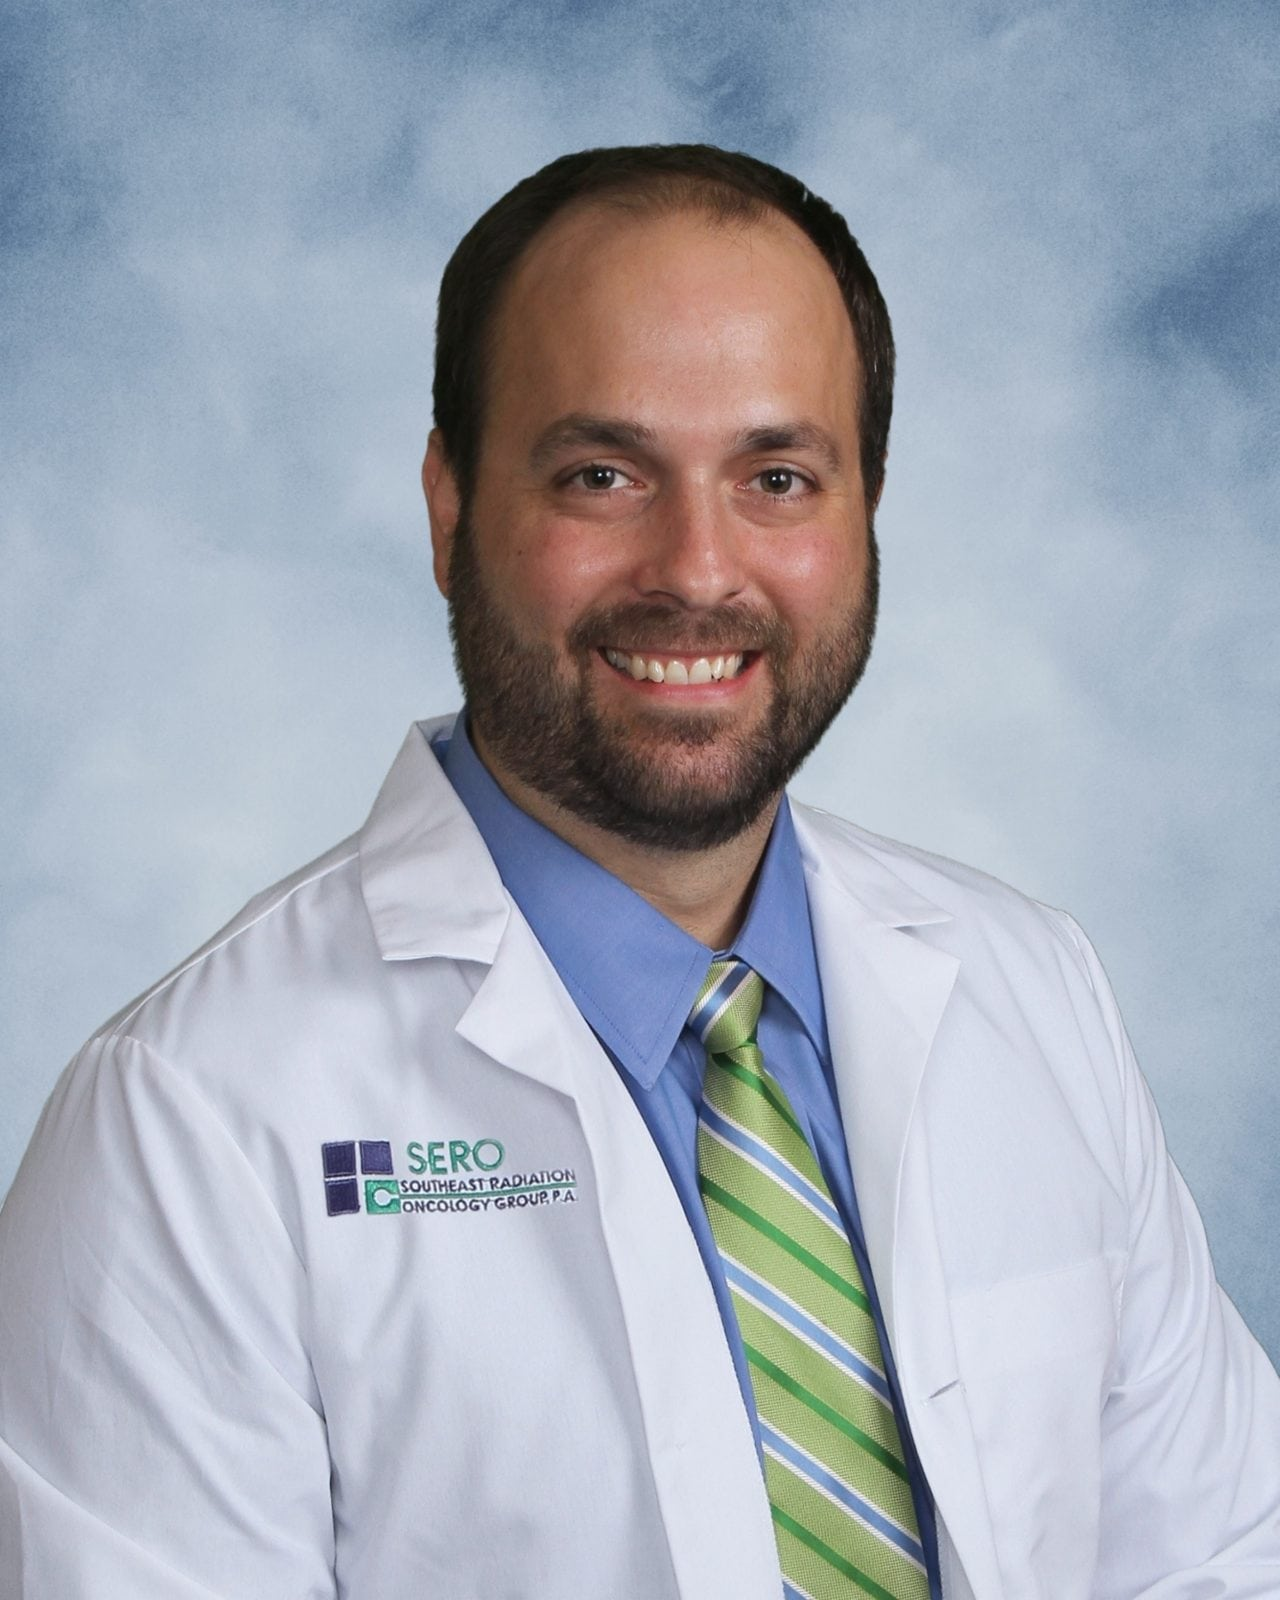 John H Heinzerling Md Southeast Radiation Oncology Group